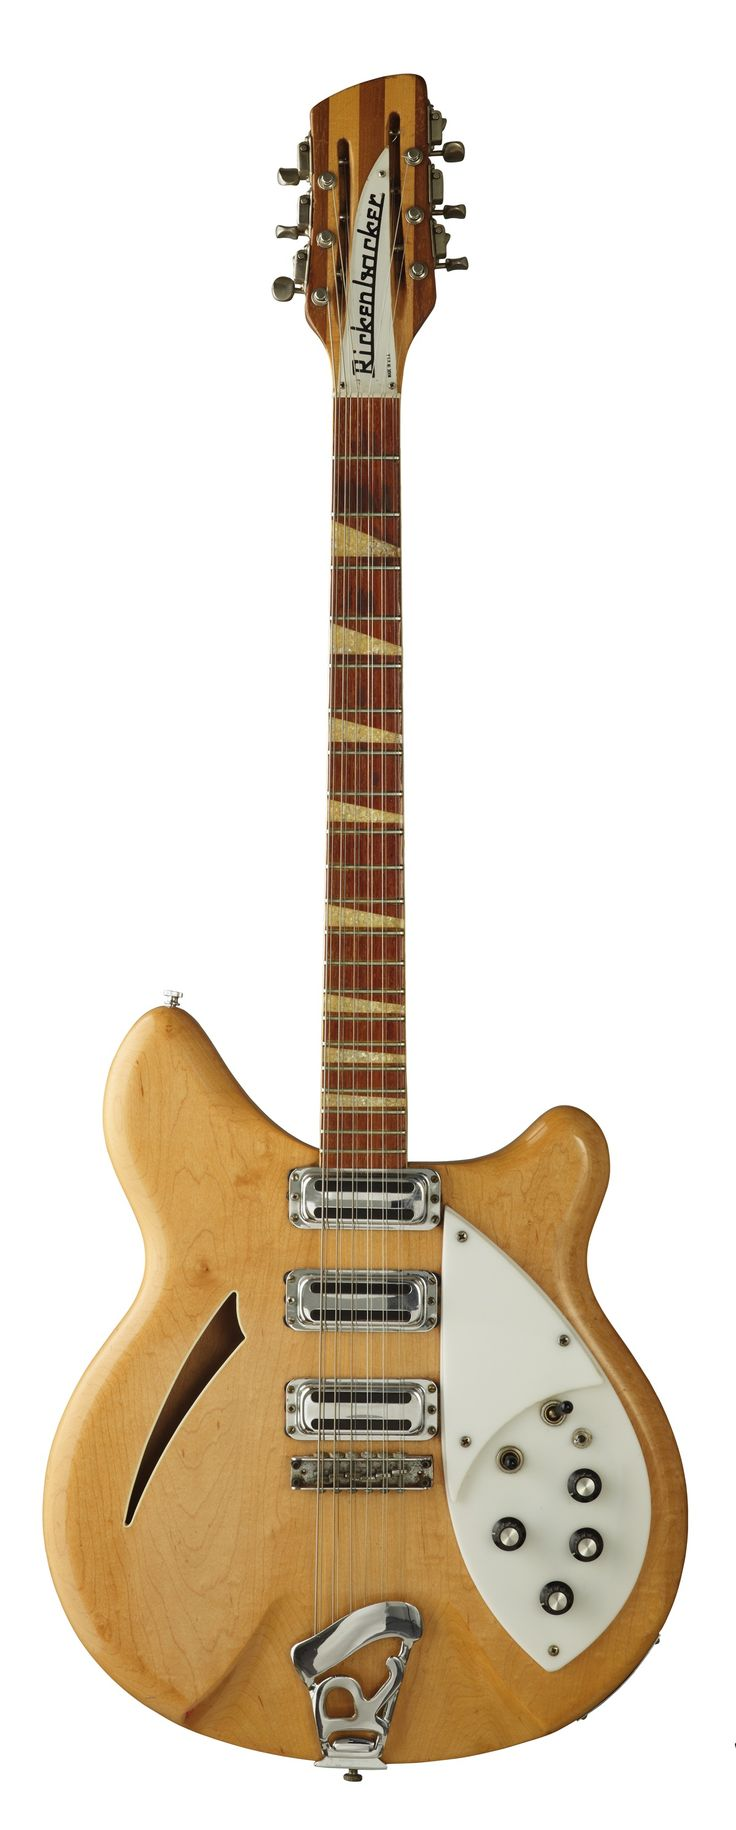 Rickenbacker 360-12 1964 Roger McGuinn, The Byrds. This guitar was stolen in 1966 at a Byrds concert at Fordham University in New York and didn't resurface again until the statute of limitations expired. McGuinn immediately ordered another 370-12 in Mapleglo (Rickenbacker's name for natural finish)